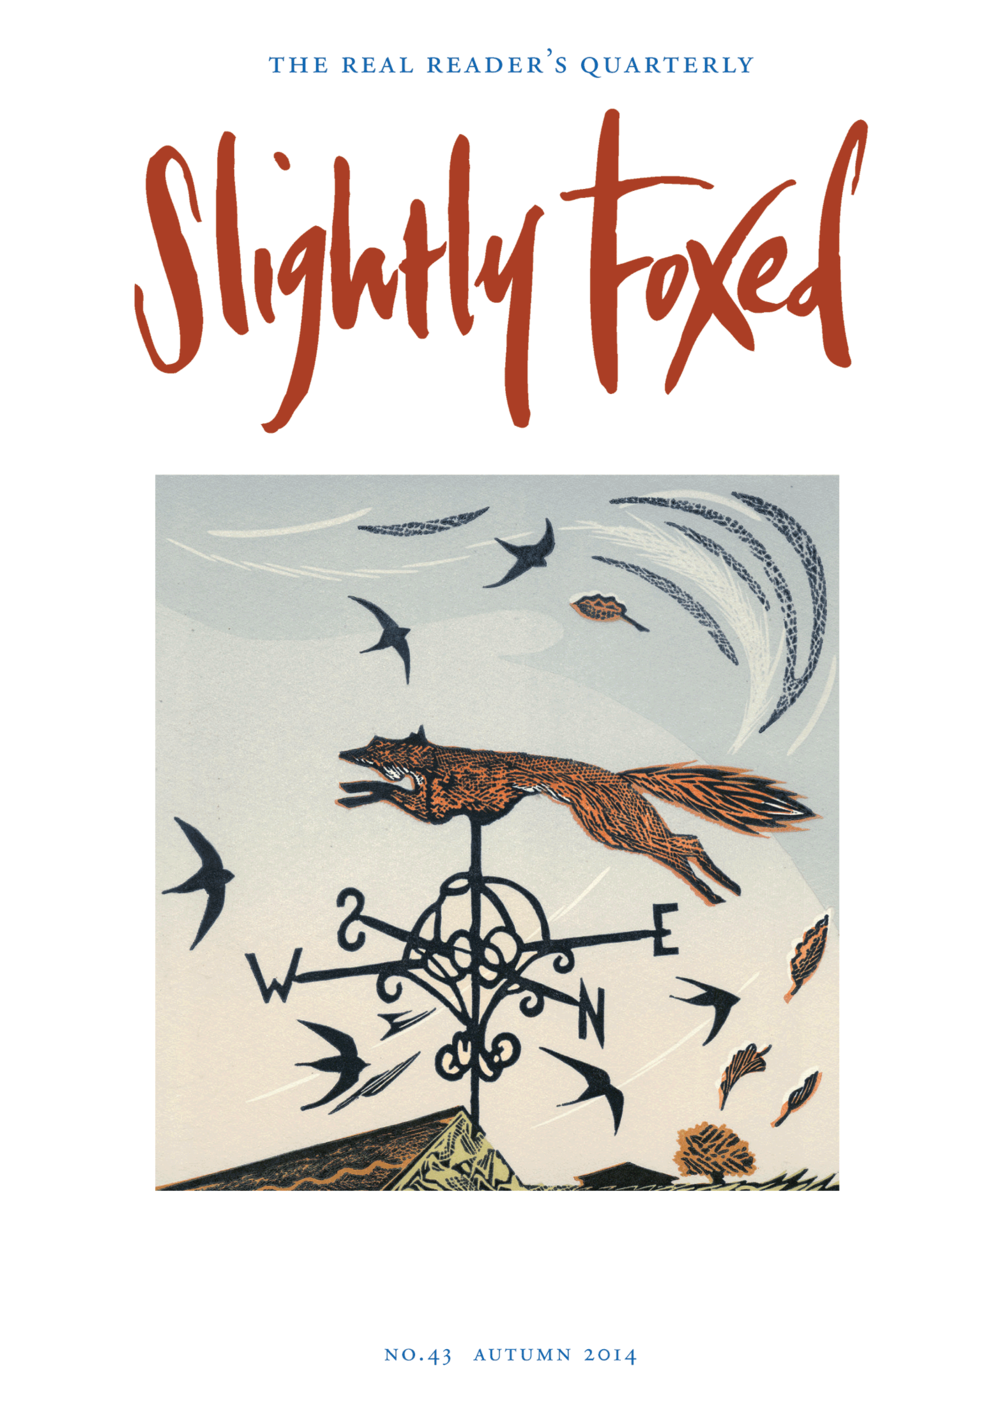 slightly_foxee280a6-43-06-single-001.png